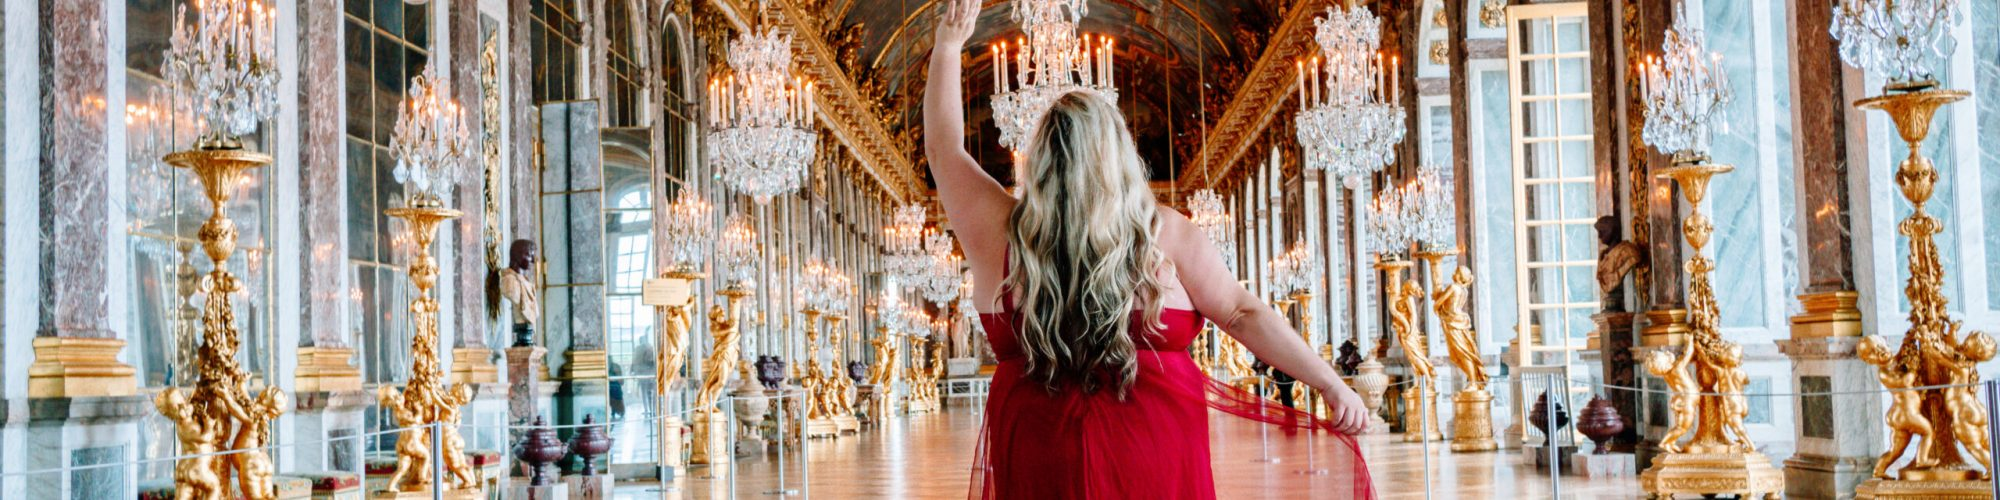 Visiting Versailles: Everything you Need to Know